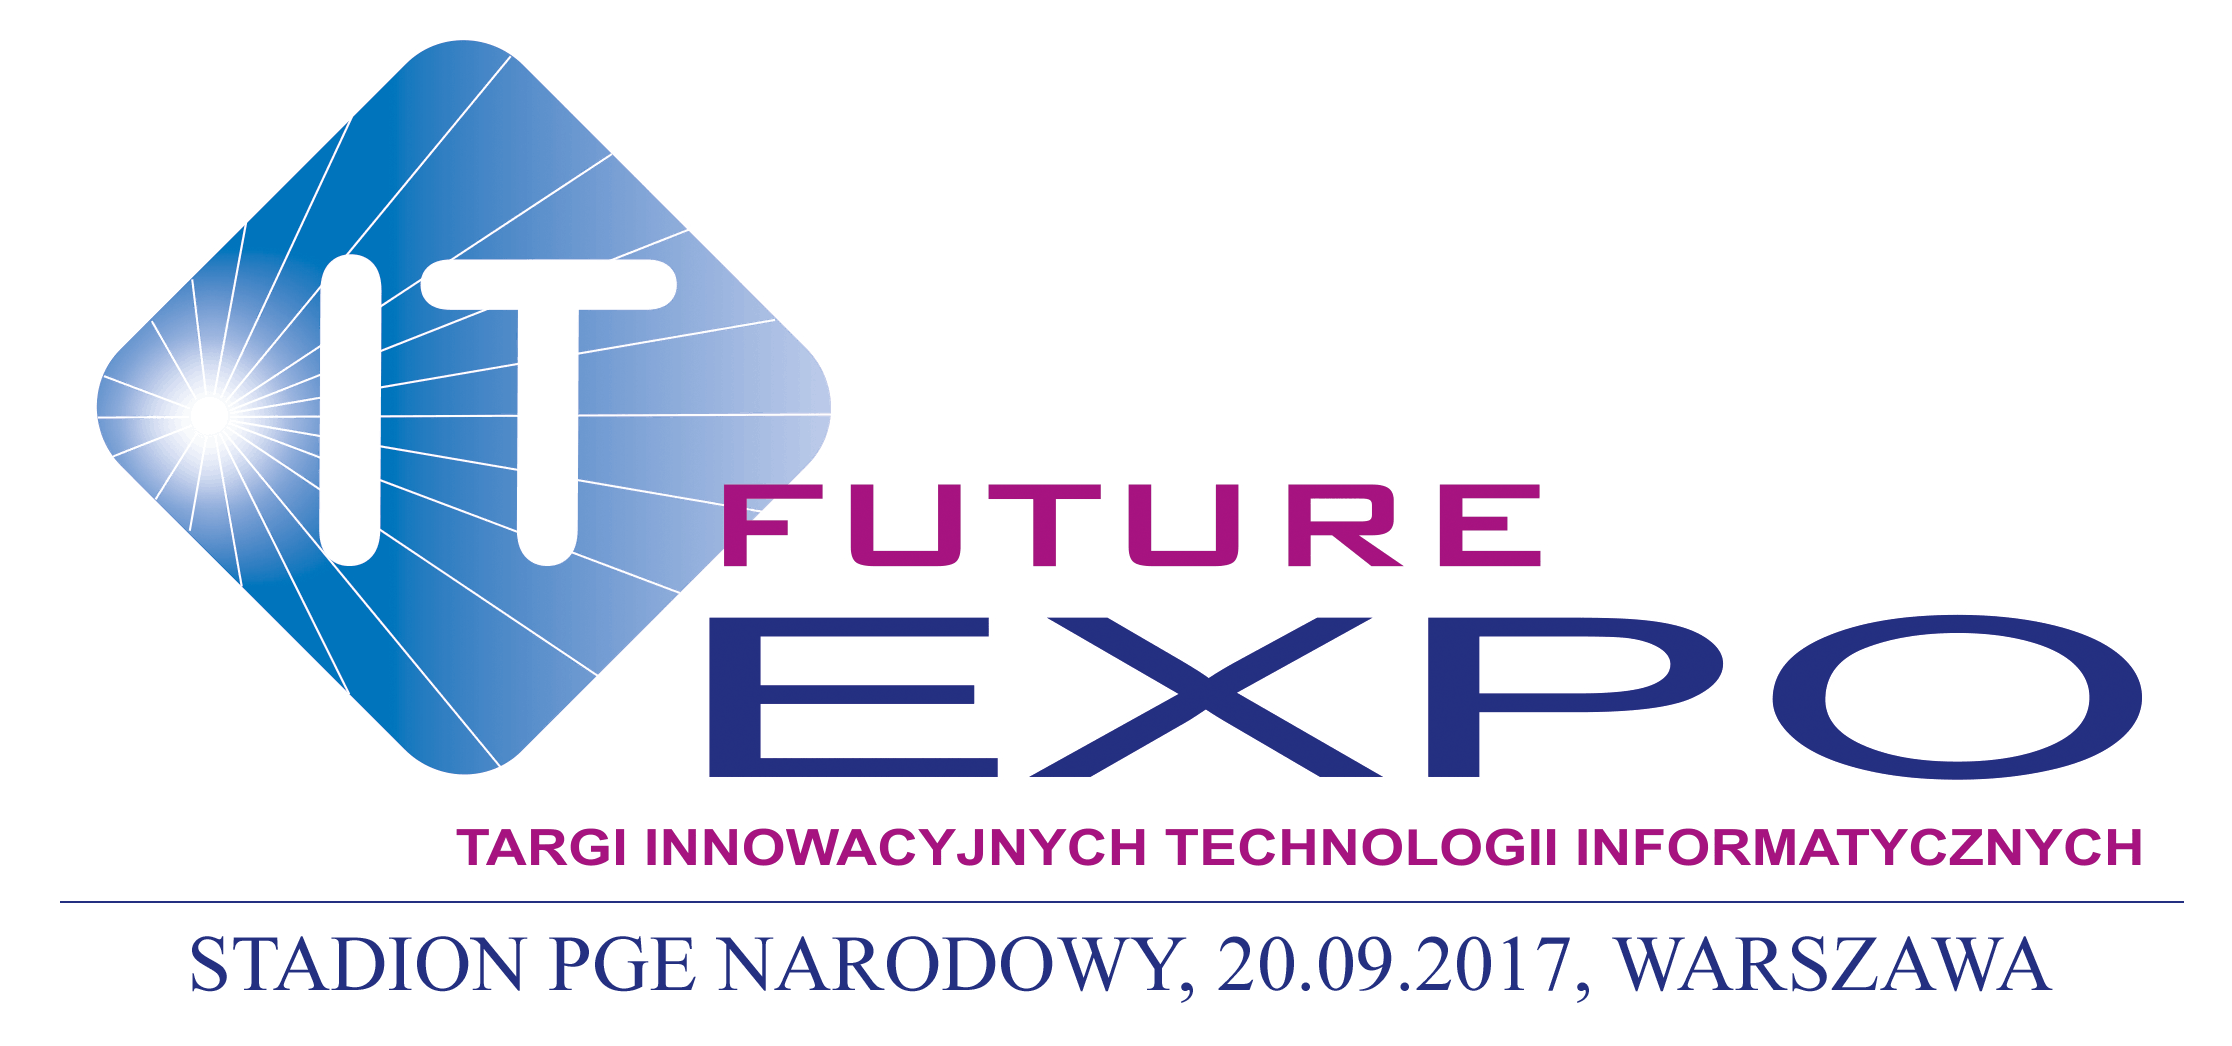 LOGO-IT_FUTURE_EXPO2017_rgbtransparent_napis_data-copy-1